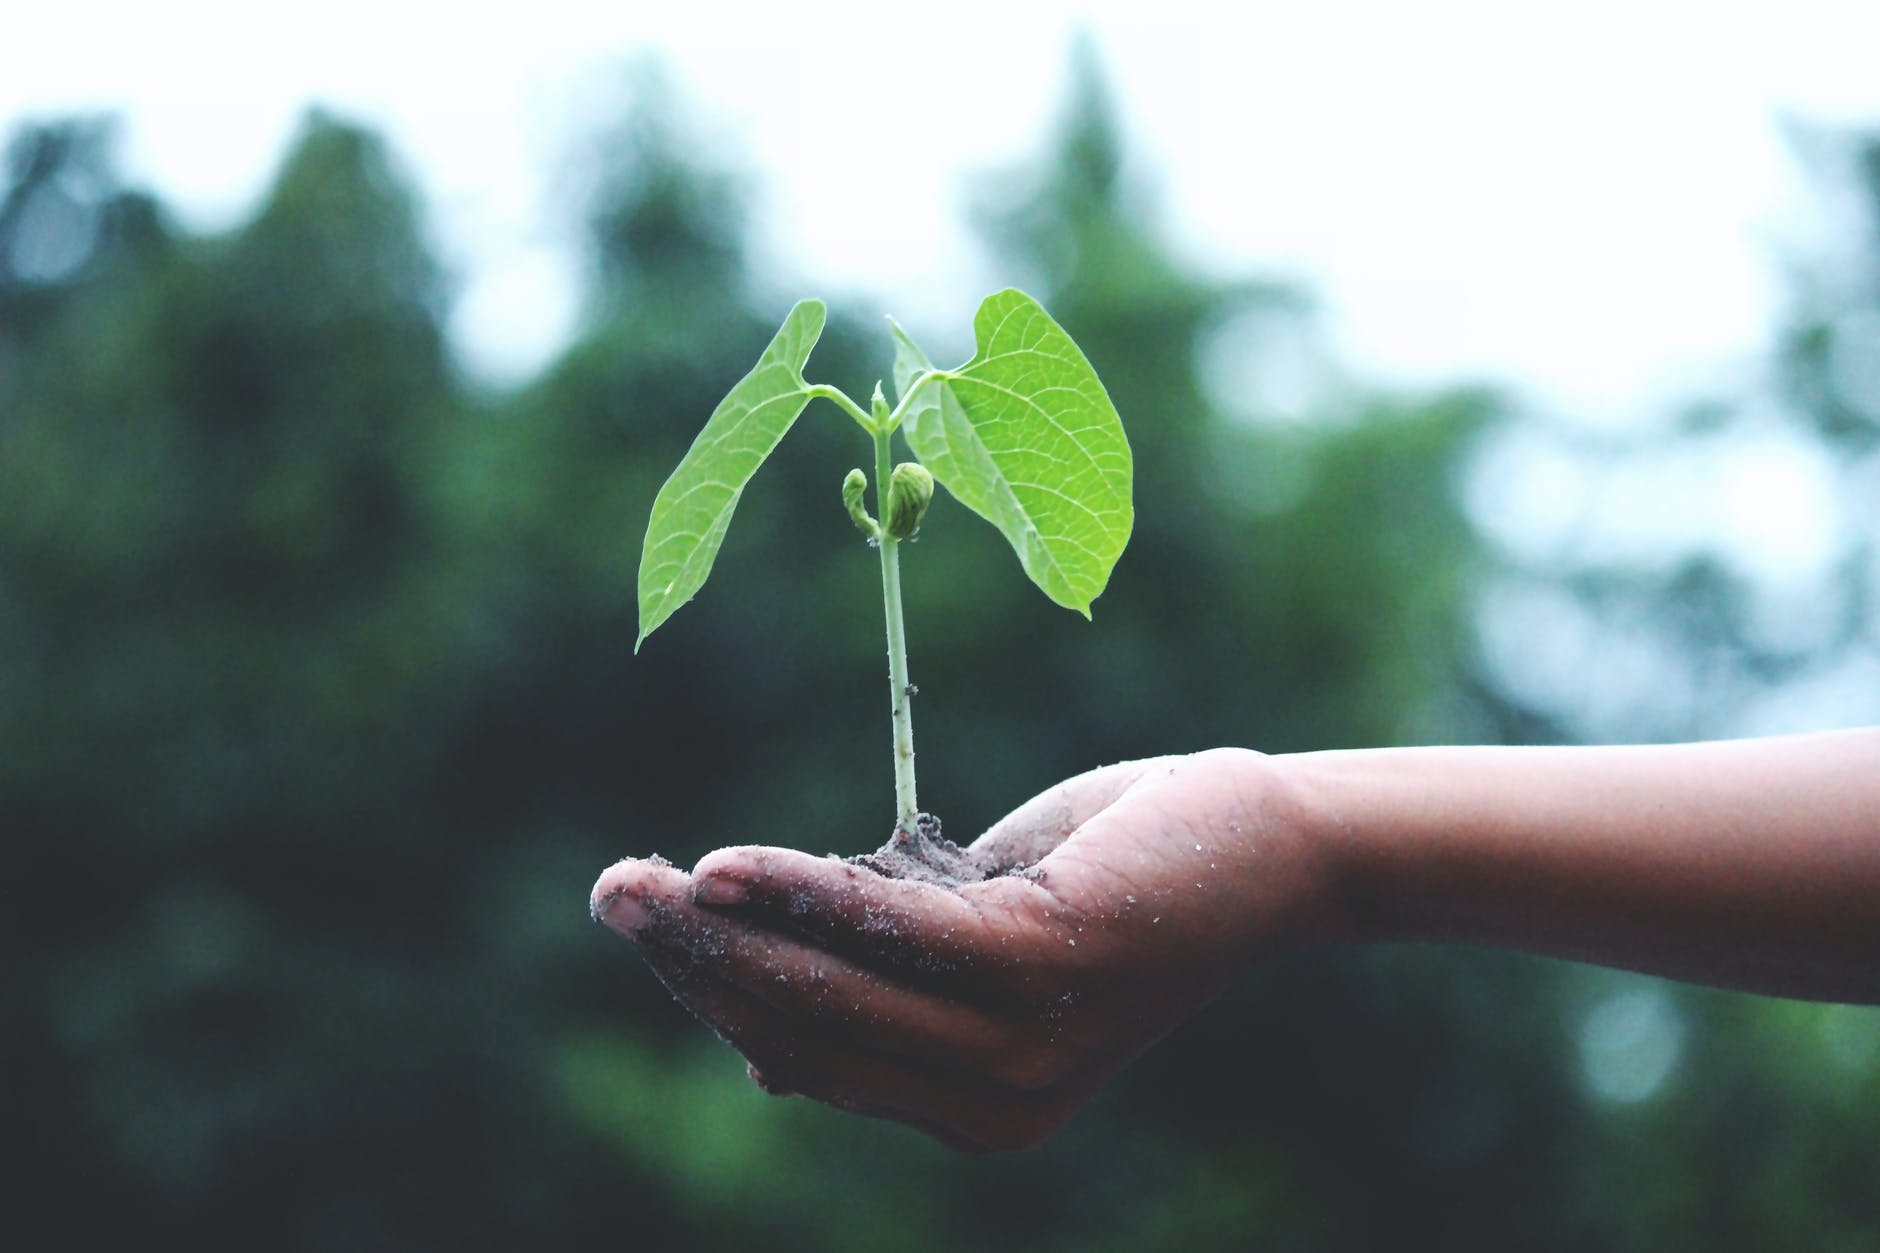 person holding a green plant